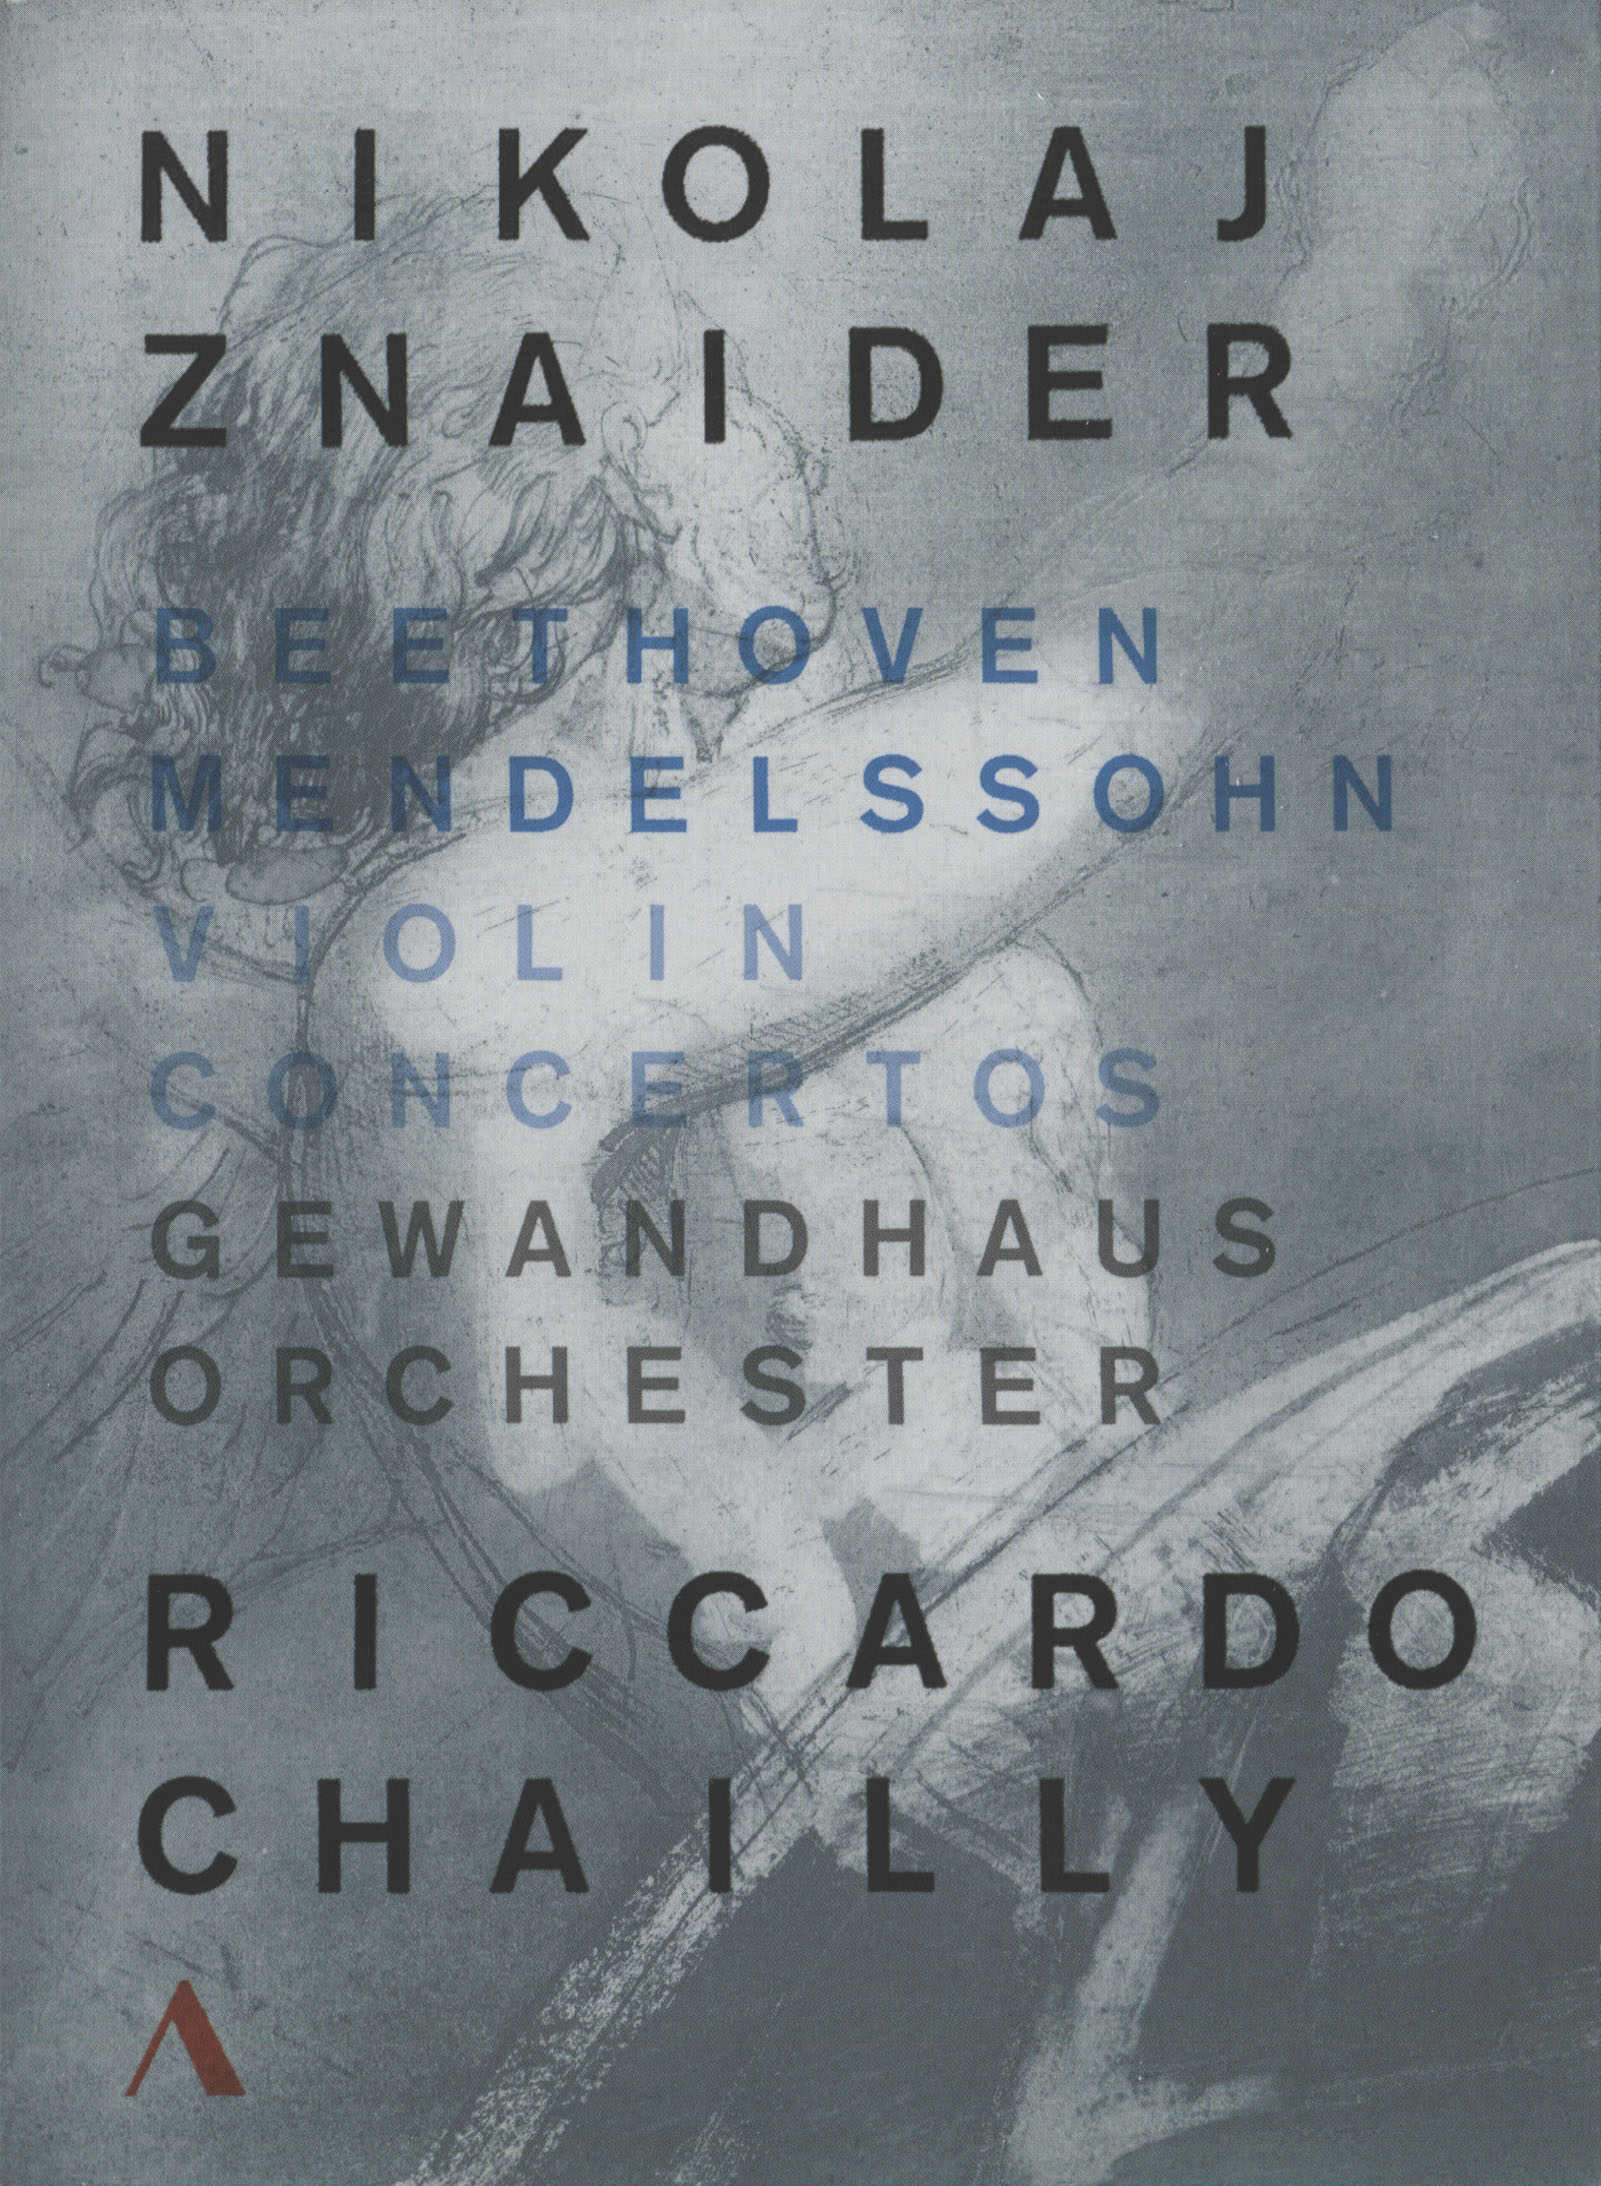 Nikolaj Znaider/Riccardo Chailly/Gewandhaus Orchestra: Beethoven/Mendelssohn: Violin Concertos